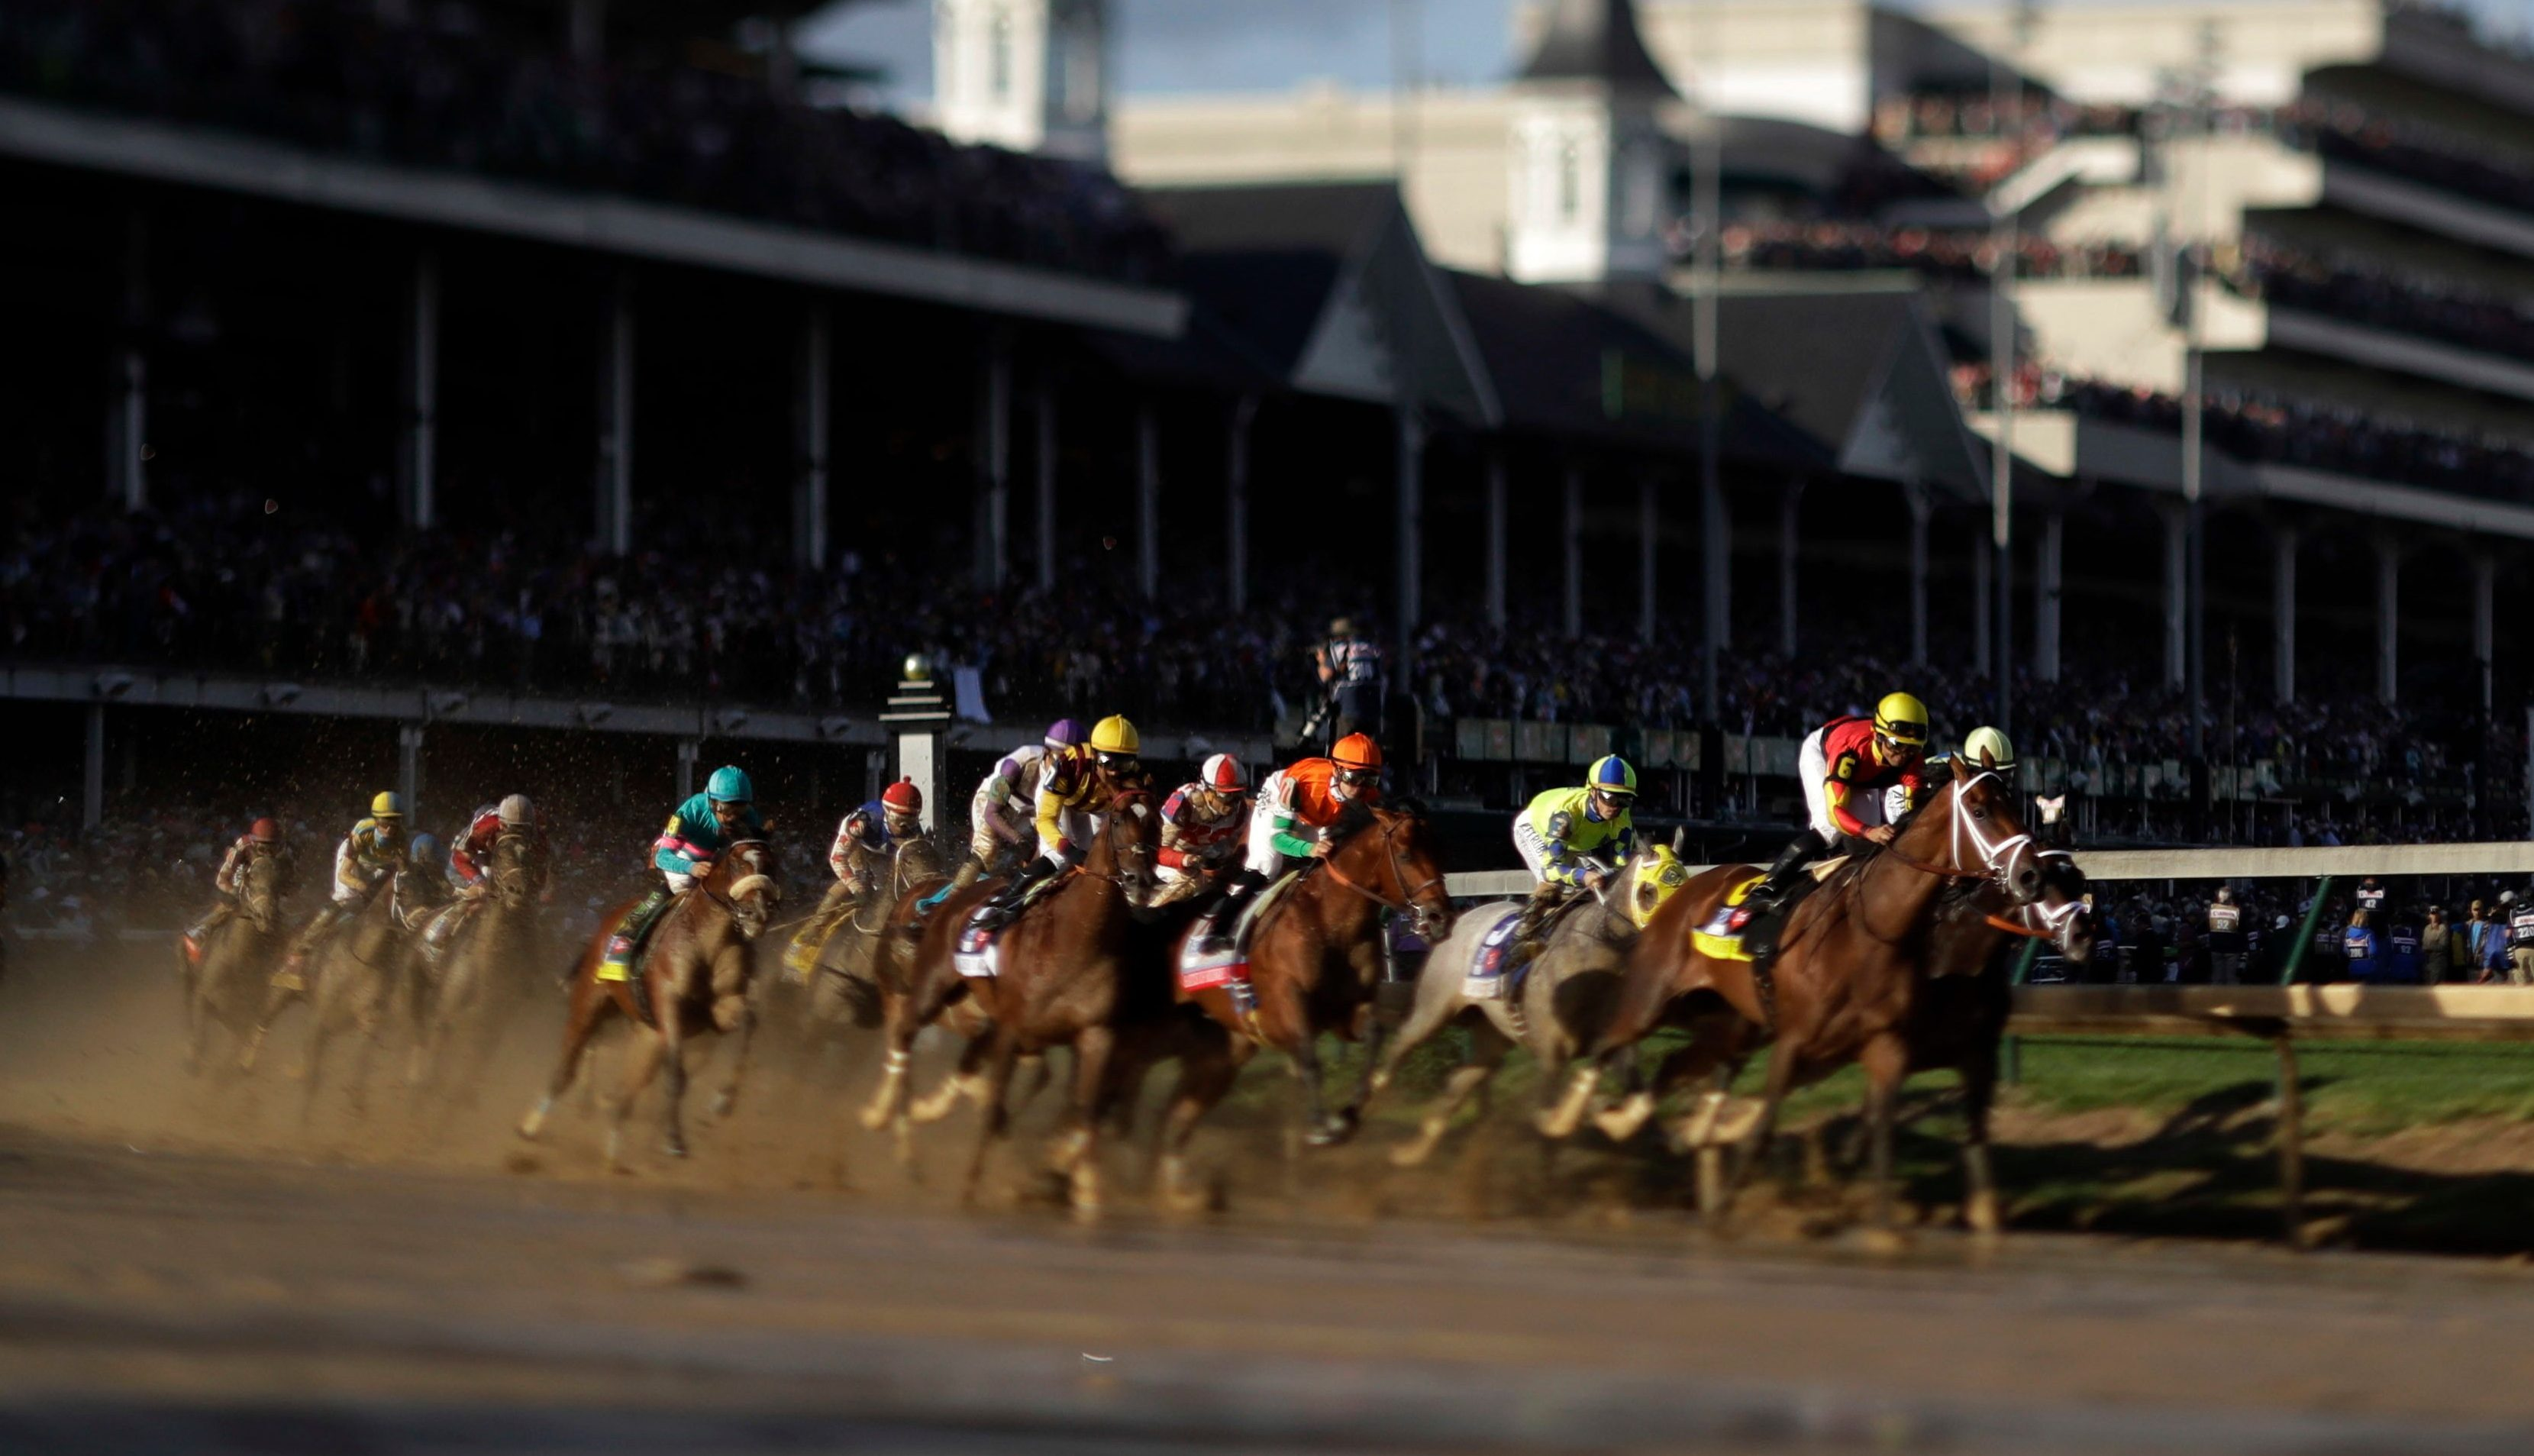 Kentucky Derby: Why aren't the horses getting faster? — Quartz